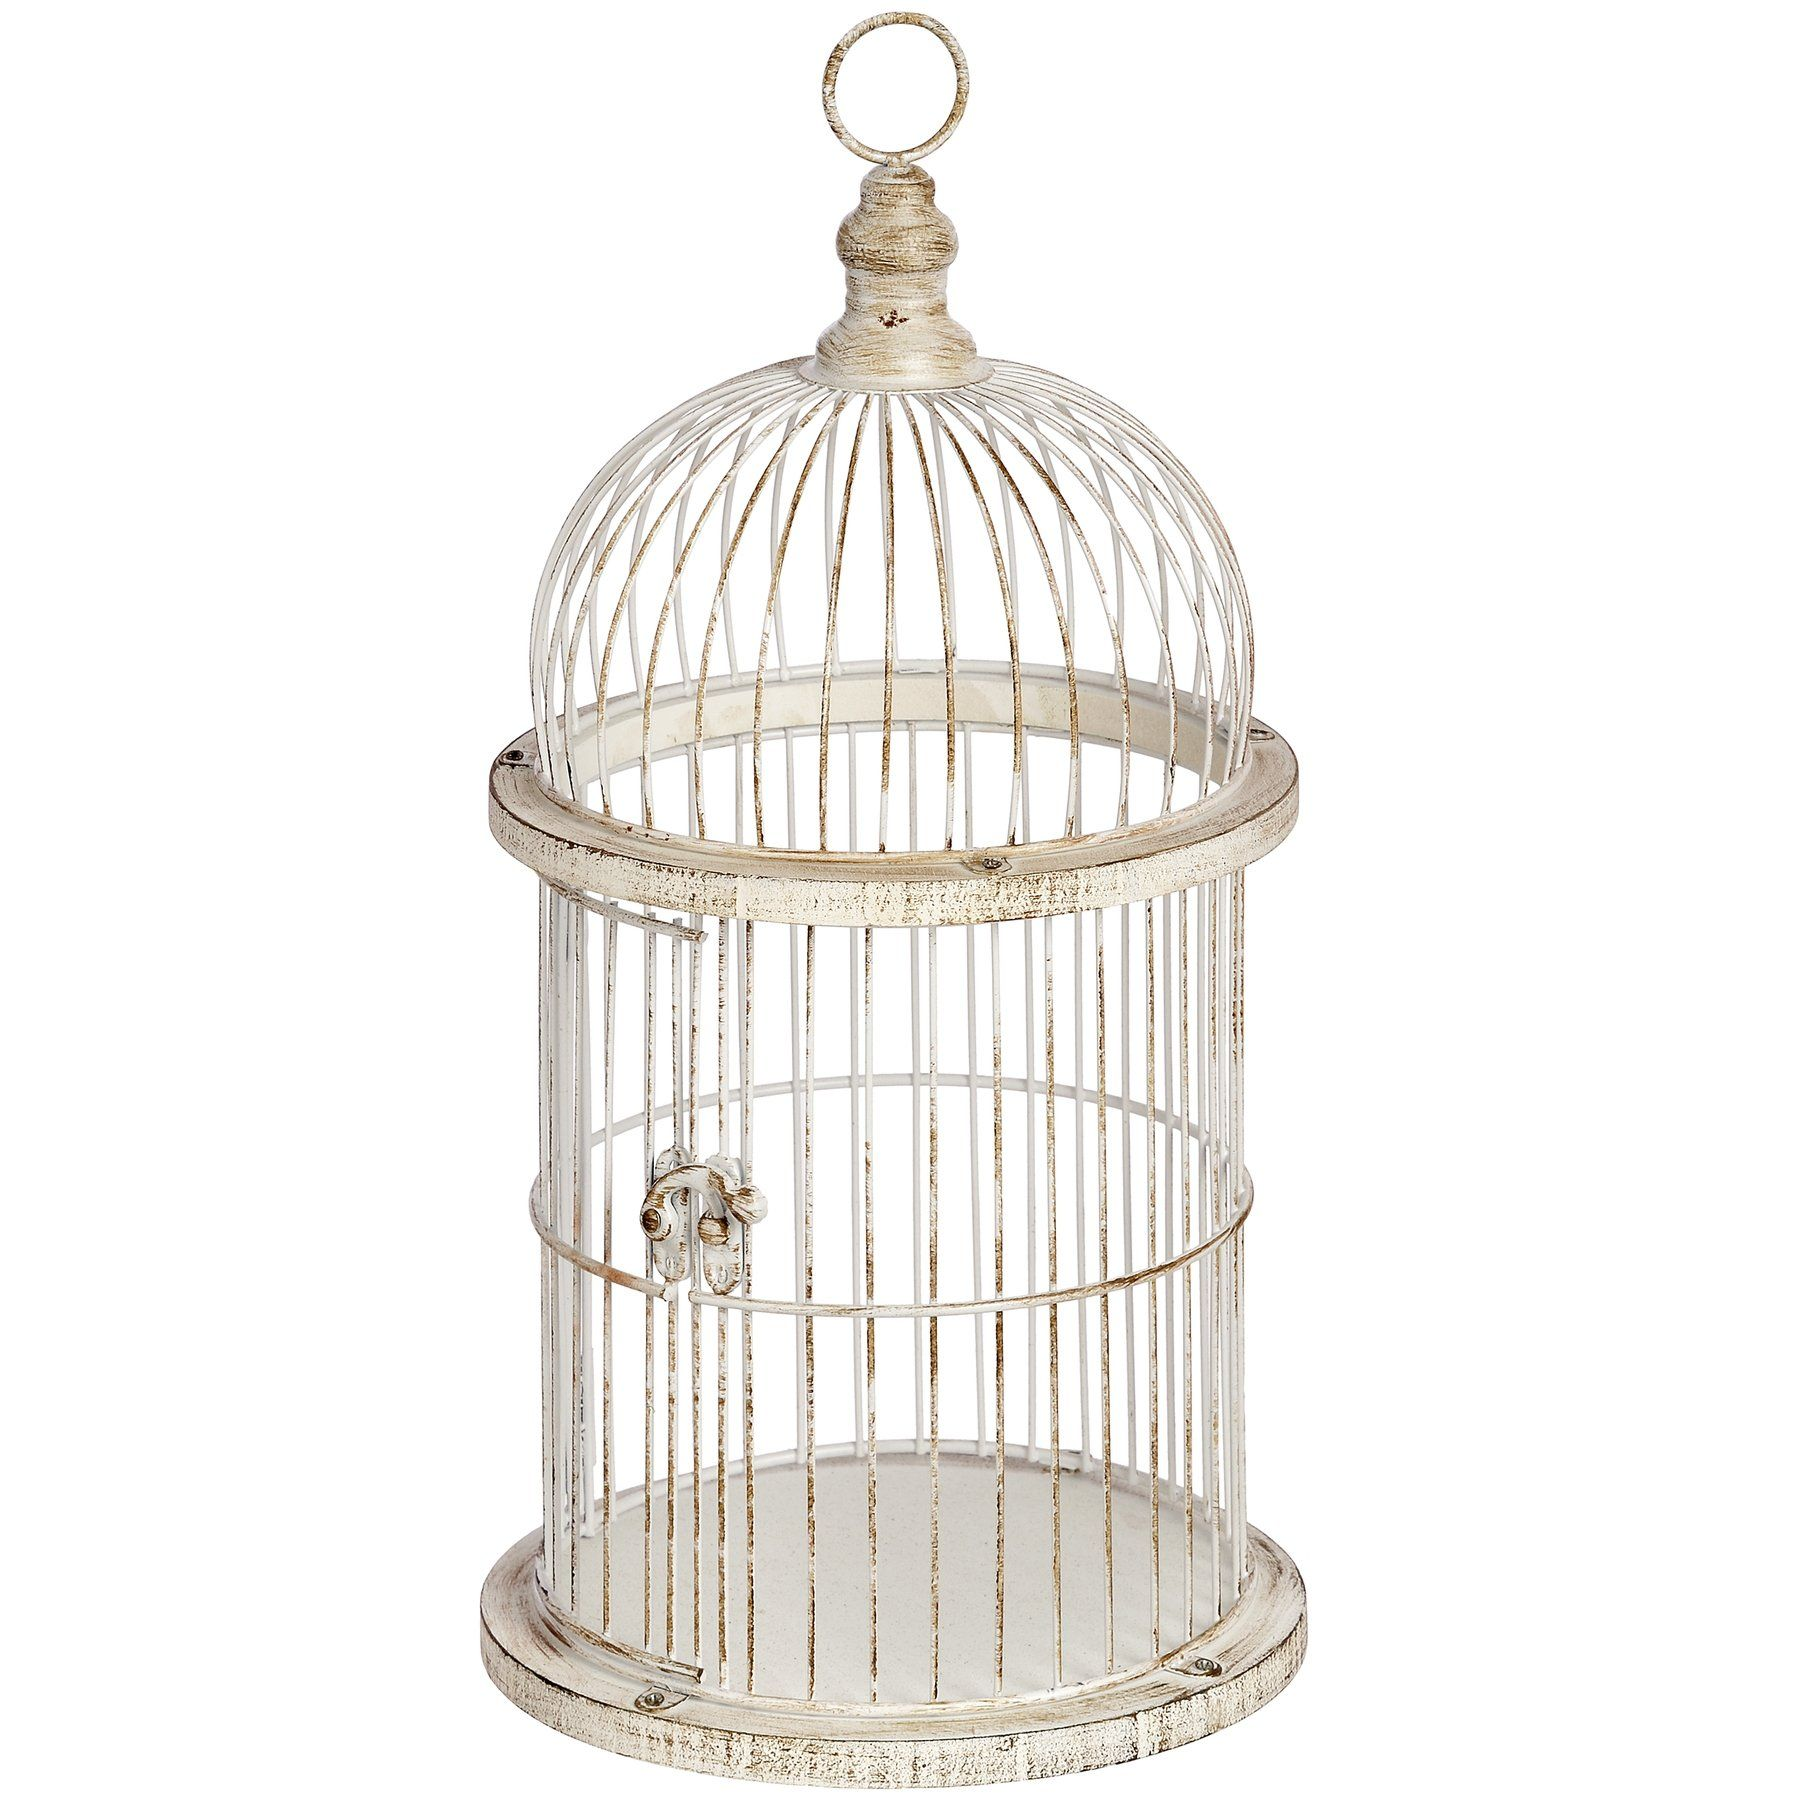 Decorative Vintage Style Birdcage Candle Holder A Beautiful Antique White Bird Cage The Mildly Distressed Finish Creates